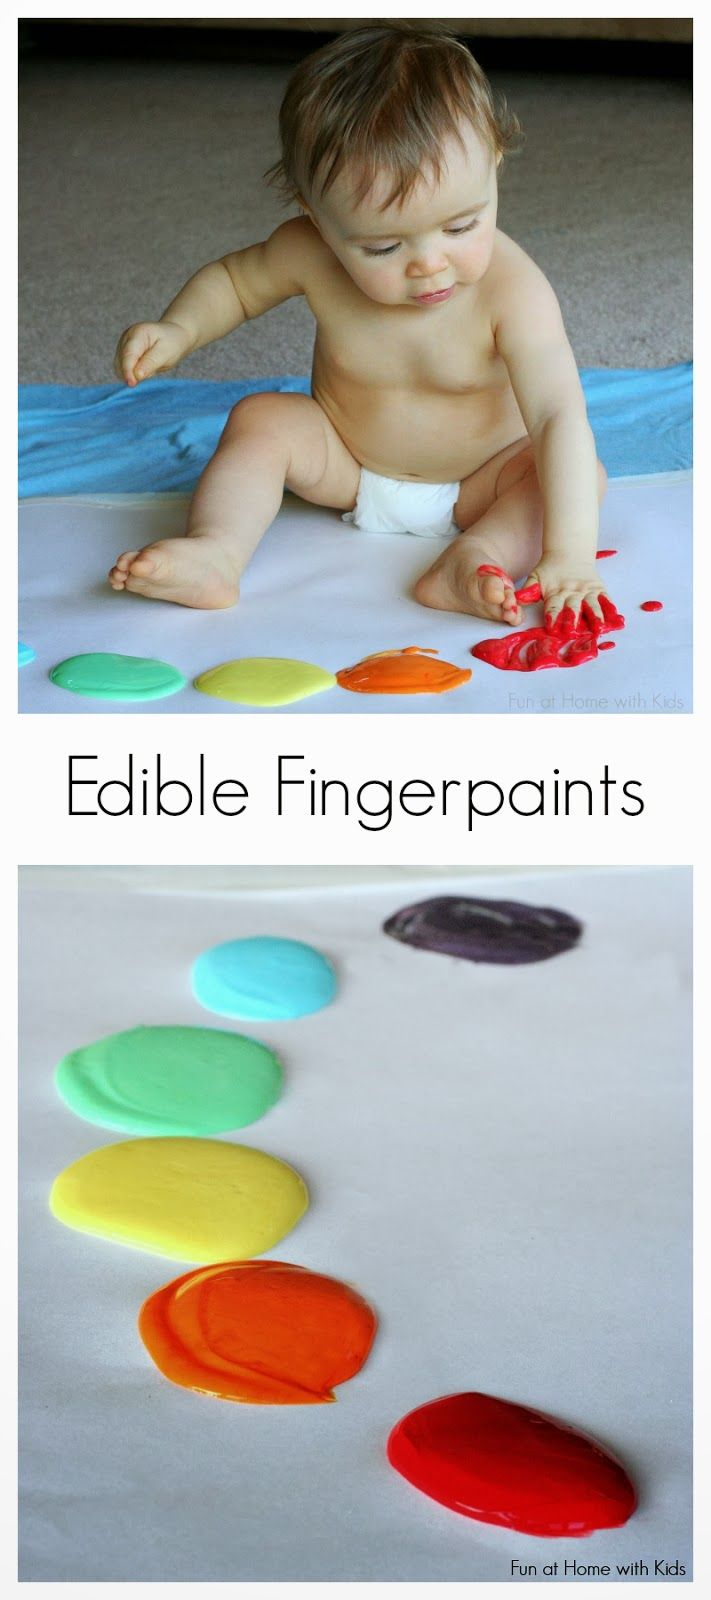 Scented Edible No-Cook Fingerpaint Recipe for Babies and Toddlers from Fun at Home with Kids @Courtney Cole